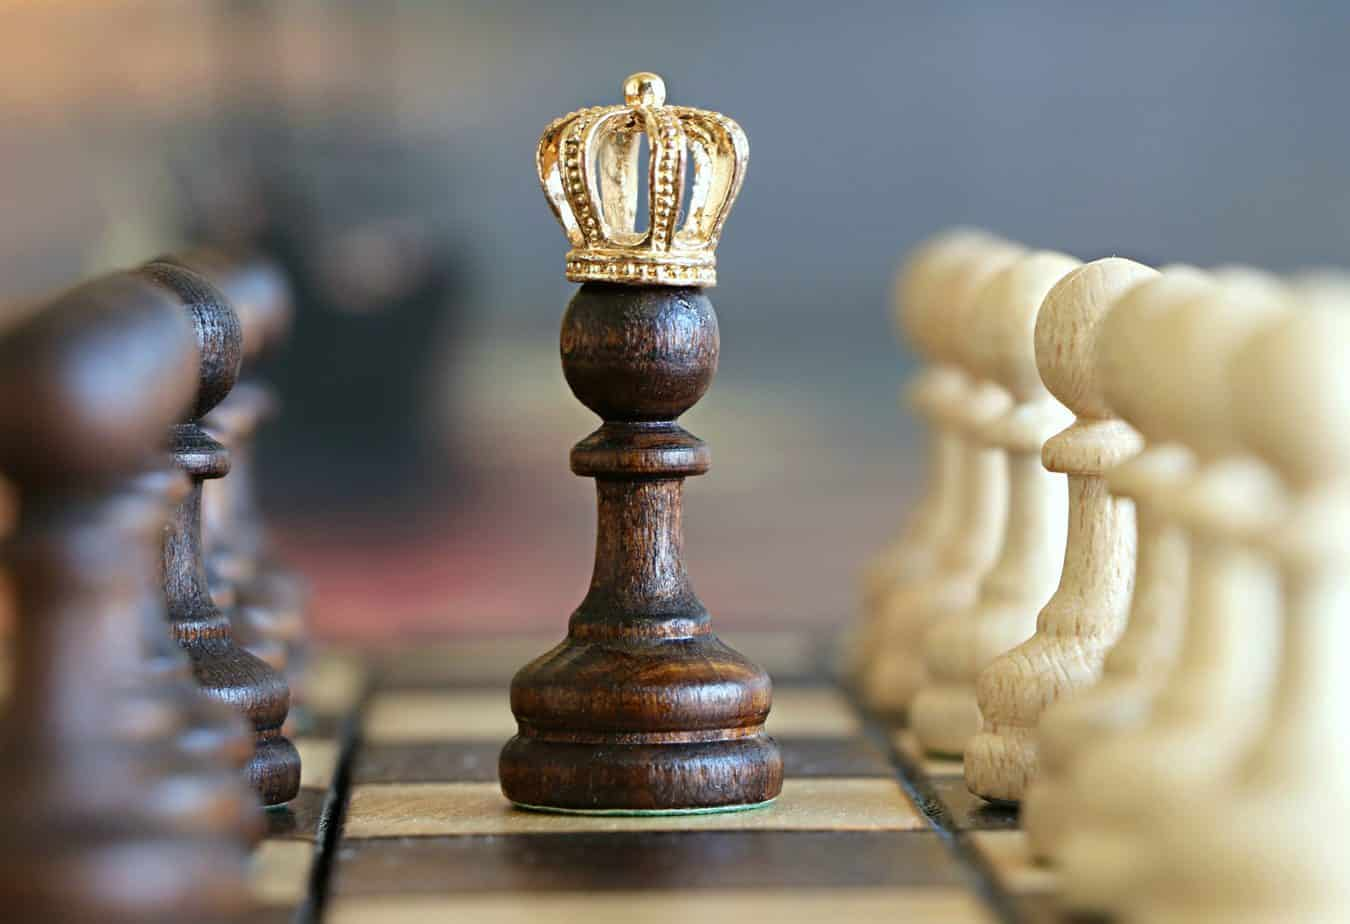 Image of chess